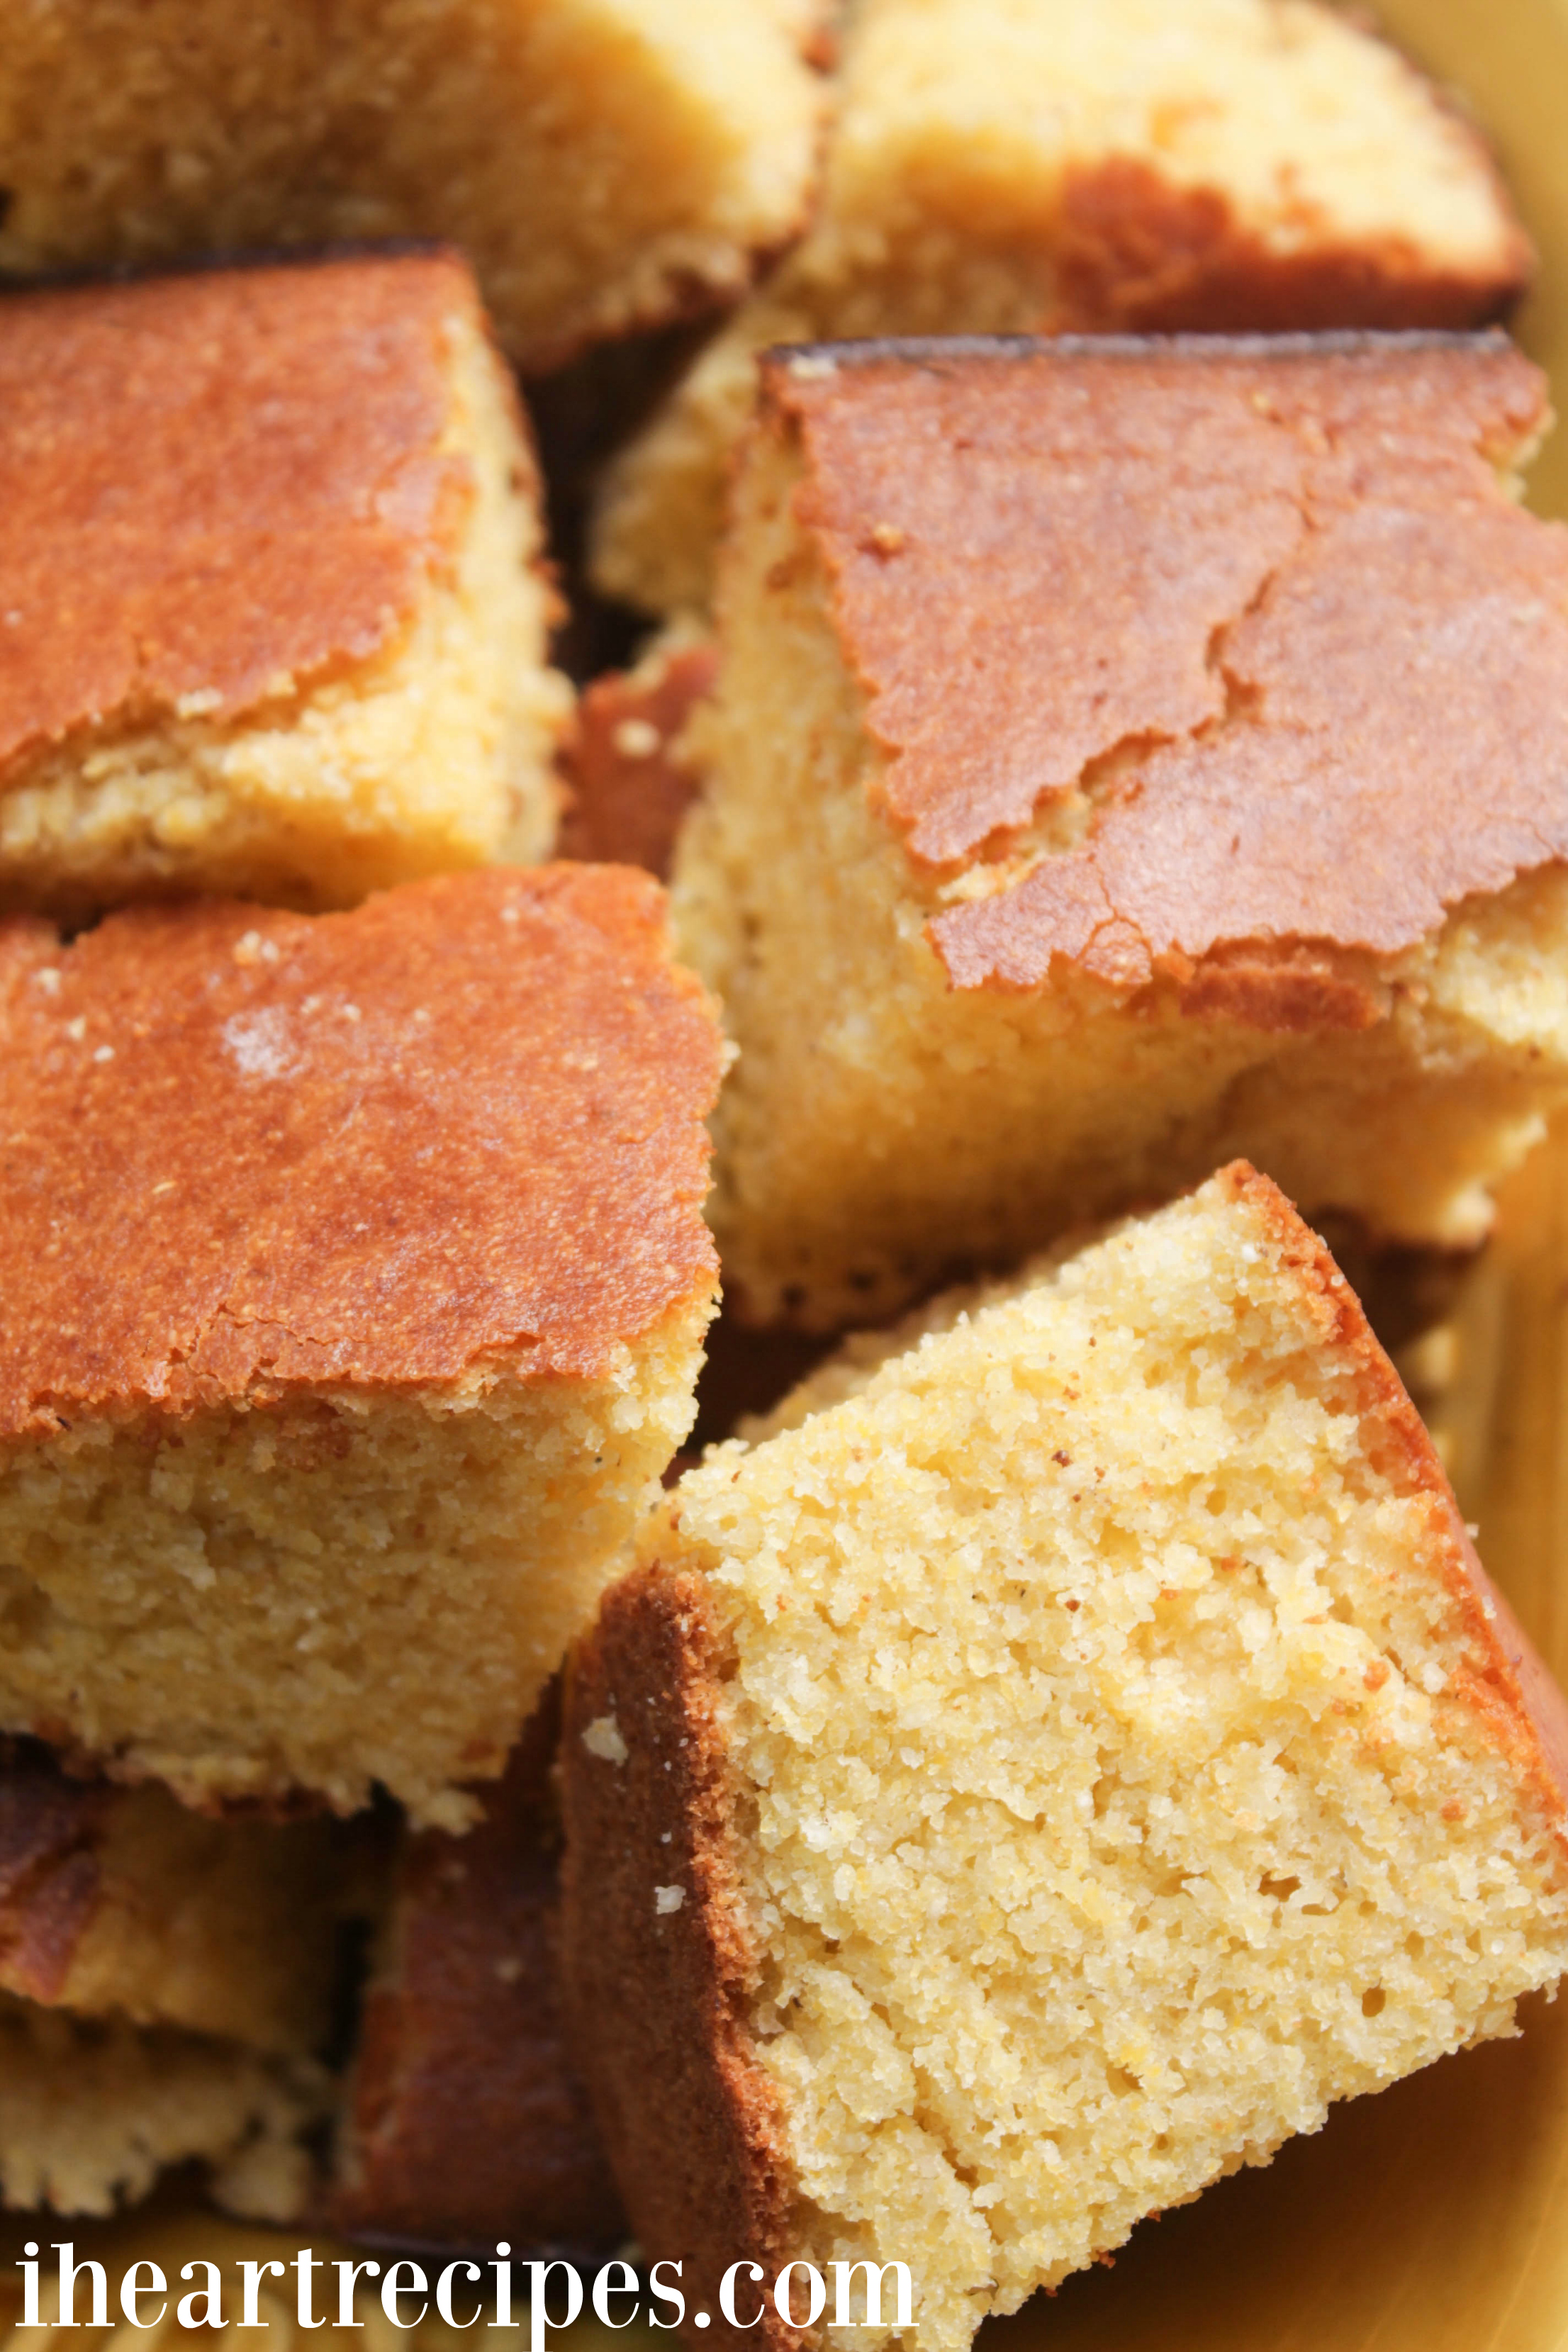 Sweet and delicious cornbread with a golden brown crust and sweet, moist inside